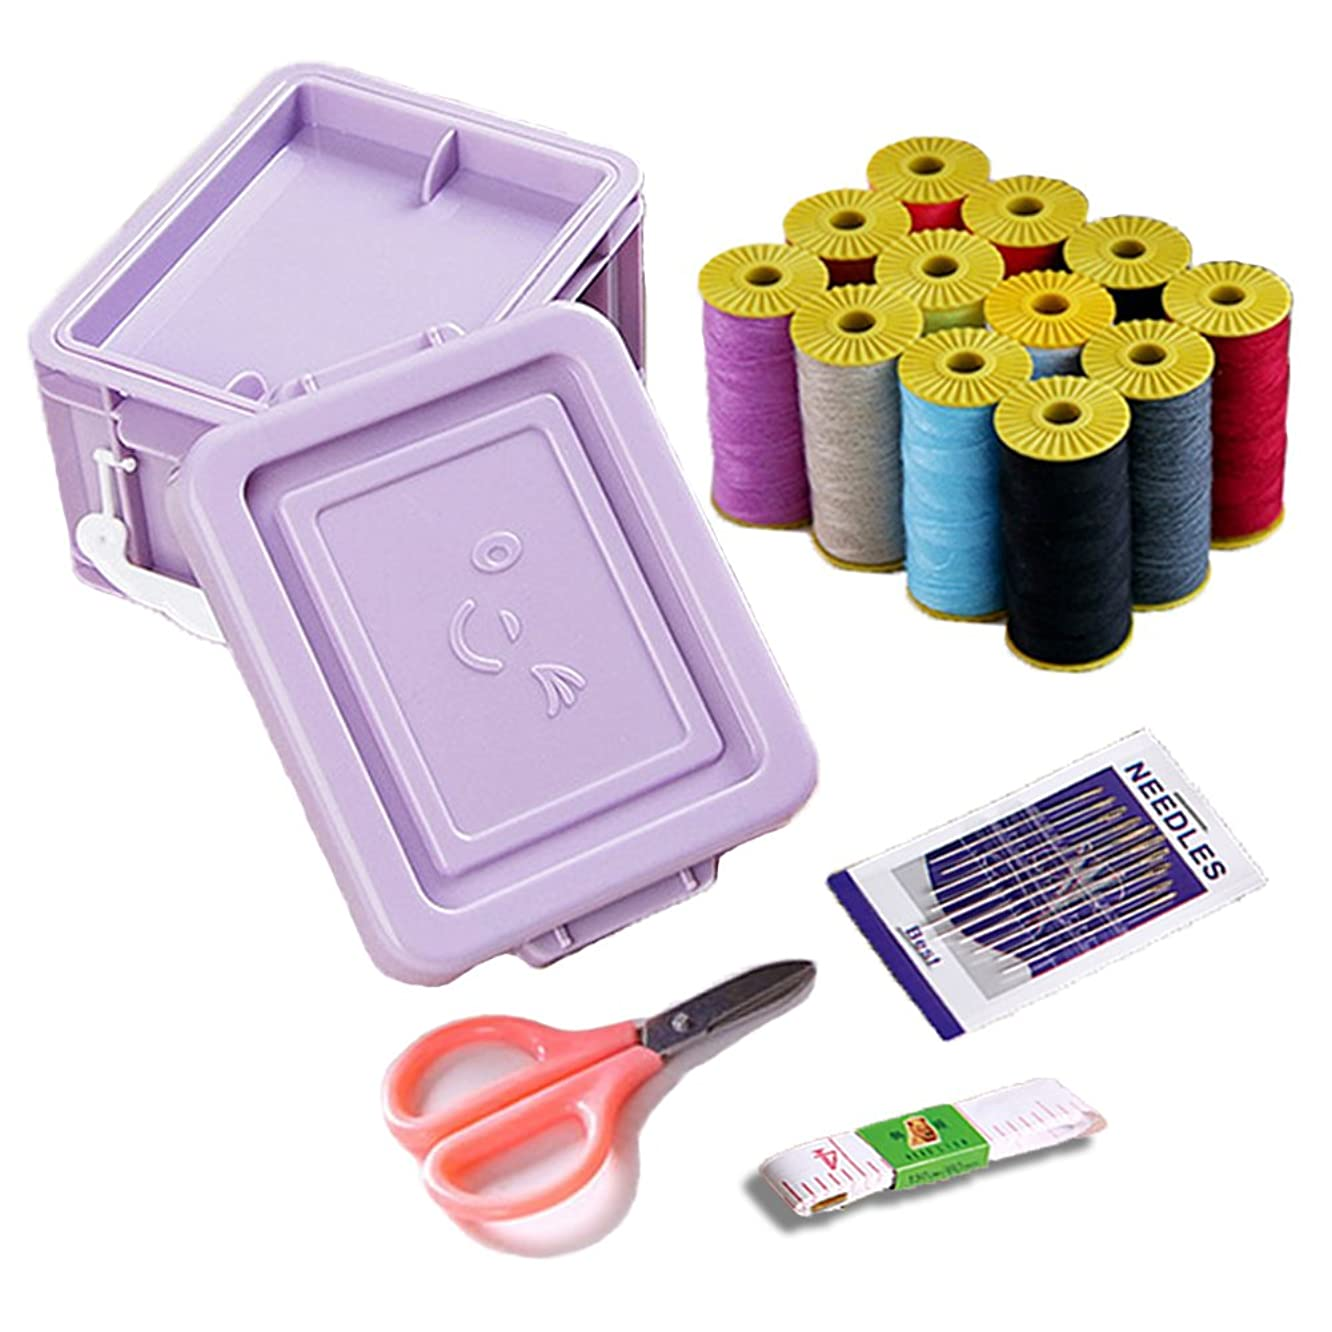 Sewing Kit, Sew Supplier Set with Threads, Needles, Scissors, Tape Measure, Carrying Case-Mini Travel Sewing Kit for Beginners, Kids, Adults, Best for Emergency, Home and Traveling to Mend and Repair